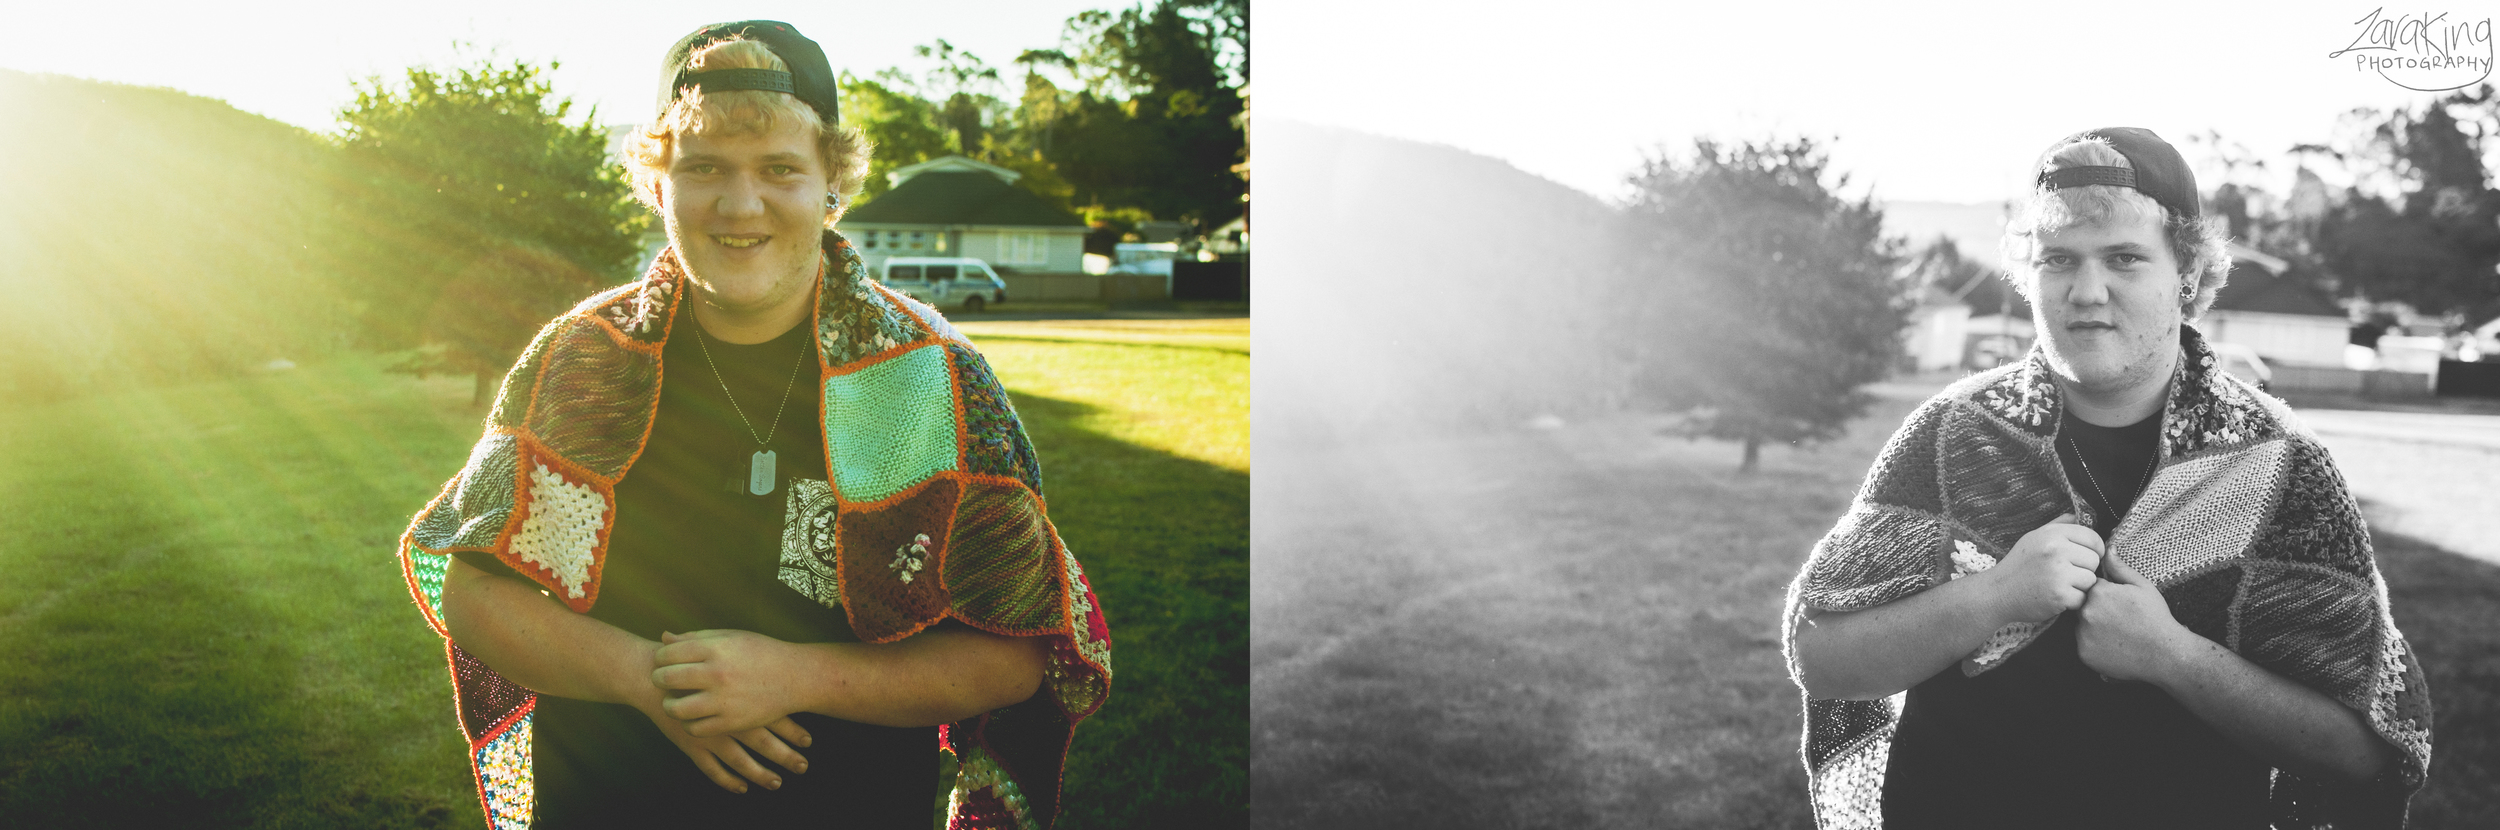 Zara King Photography | Blog | Portrait session with my brother Nathaniel